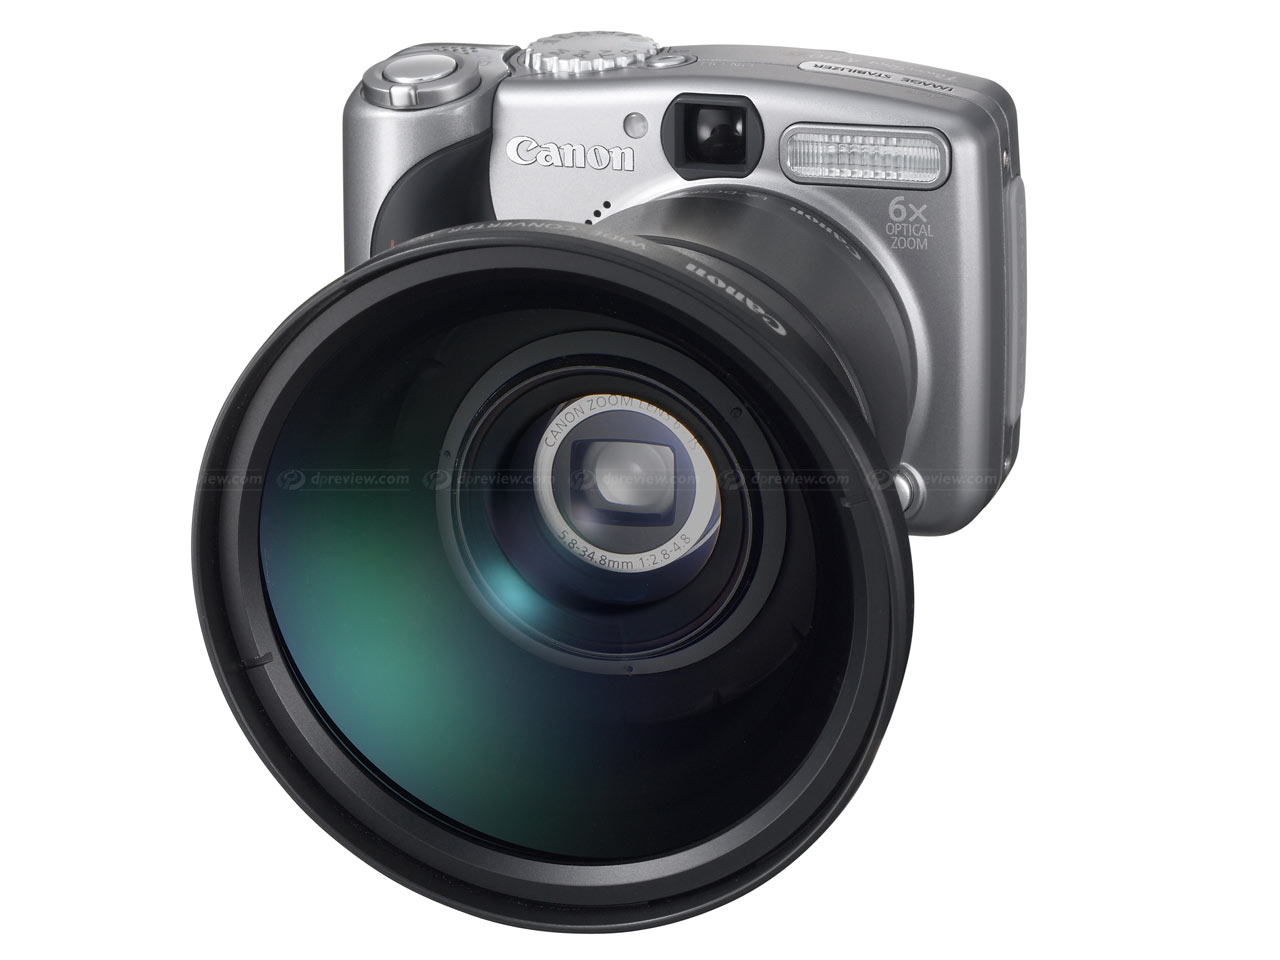 canon powershot a710is digital photography review rh dpreview com canon powershot a710 is manuel canon powershot a710 is manual download